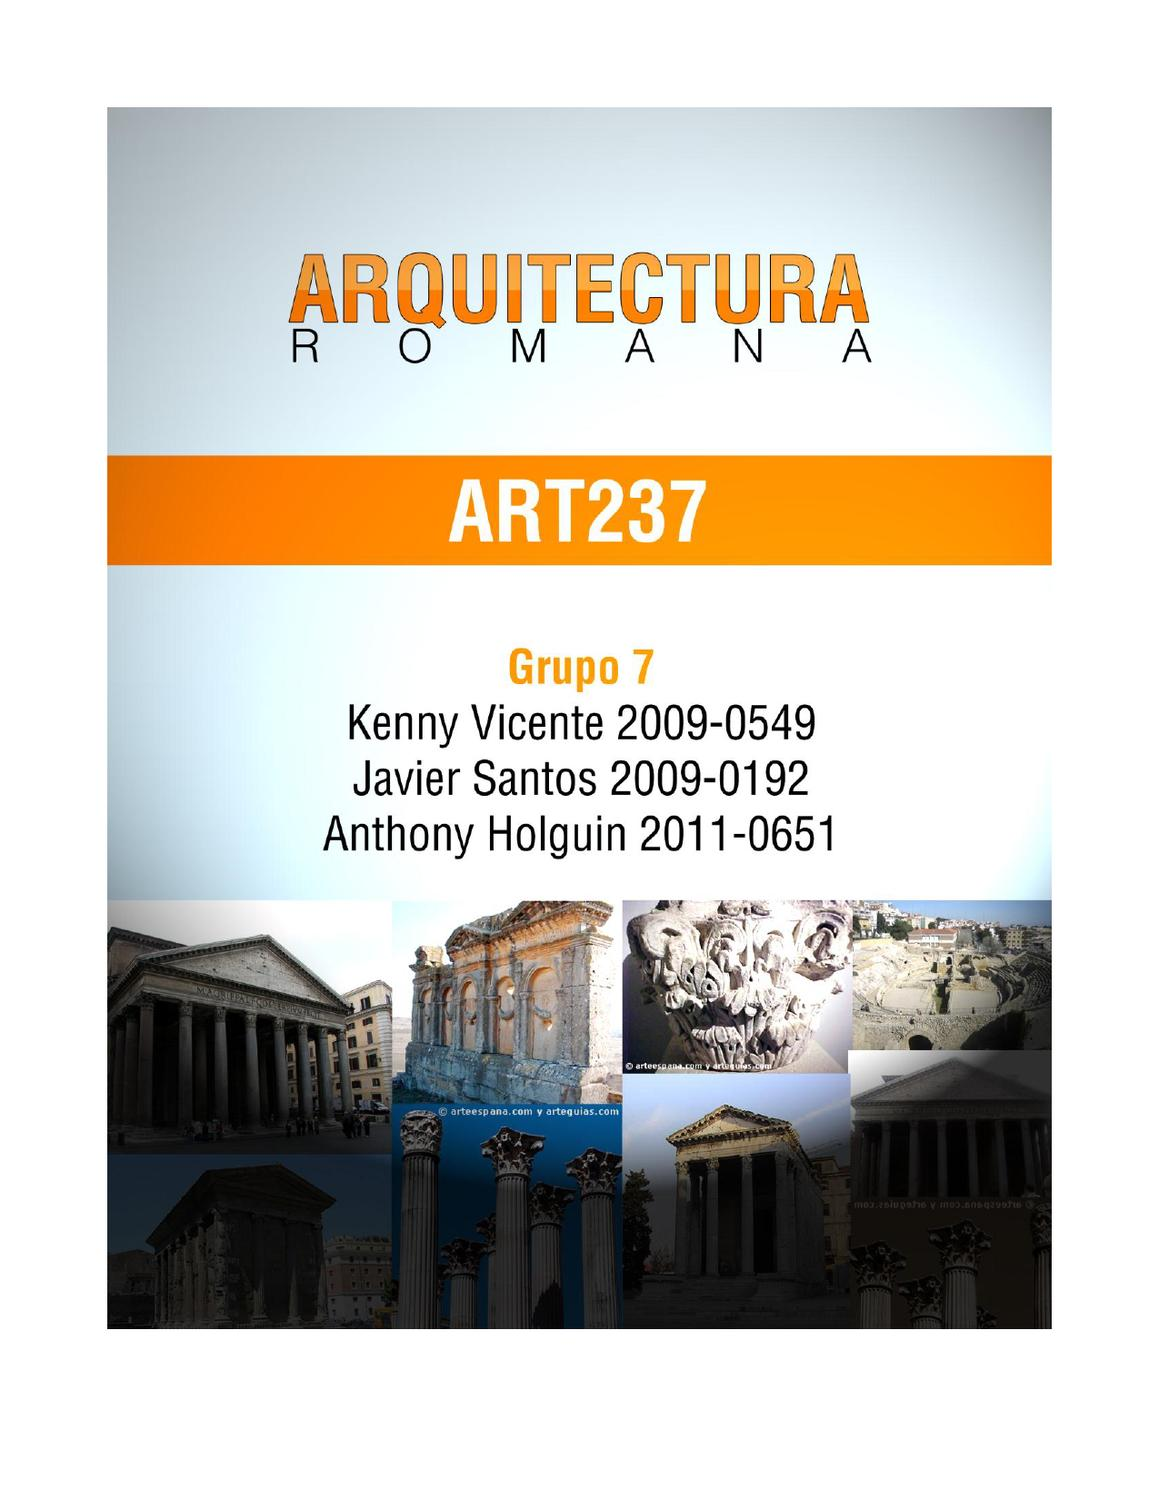 Arquitectura romana by kenny vicente issuu for Arquitectura romana pdf